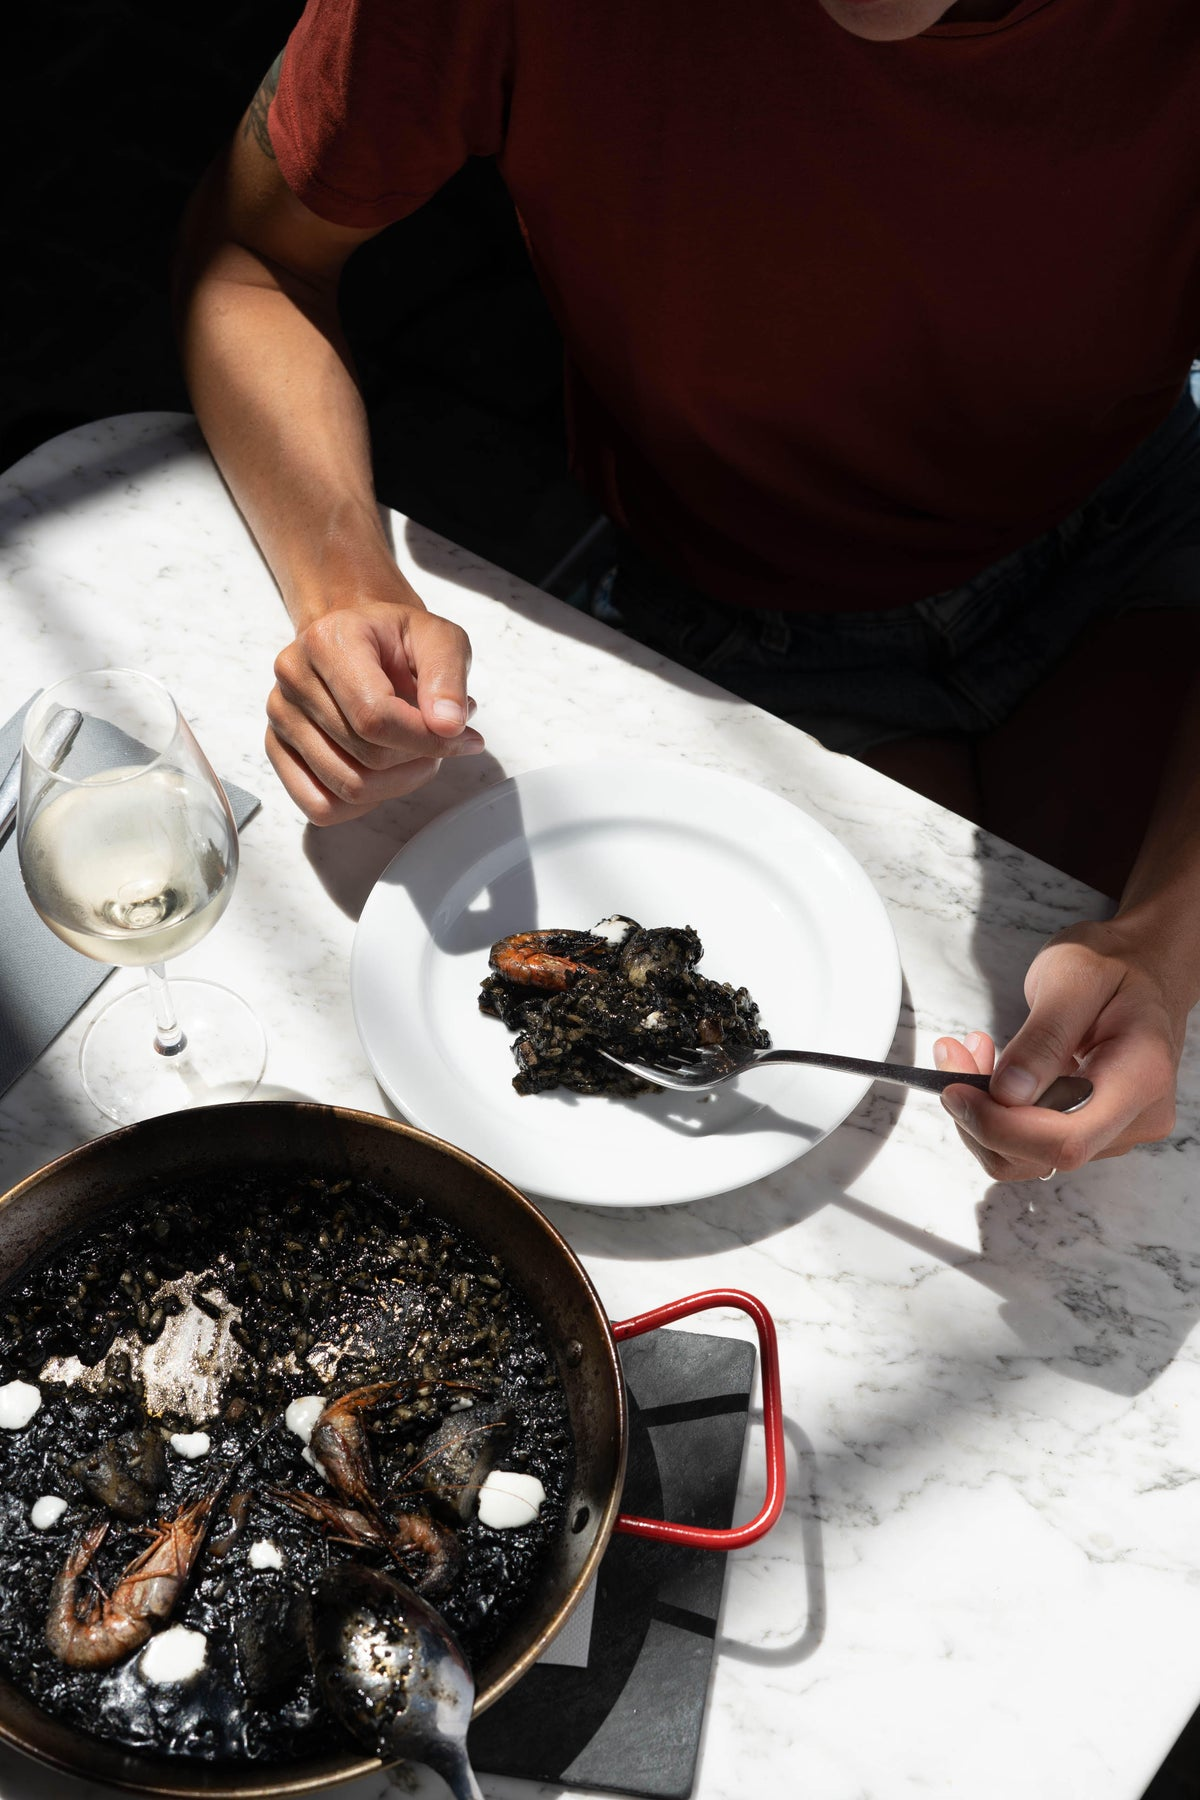 Hotel Brummell, Barcelona - pan of black paella with someone eating a plate of paella